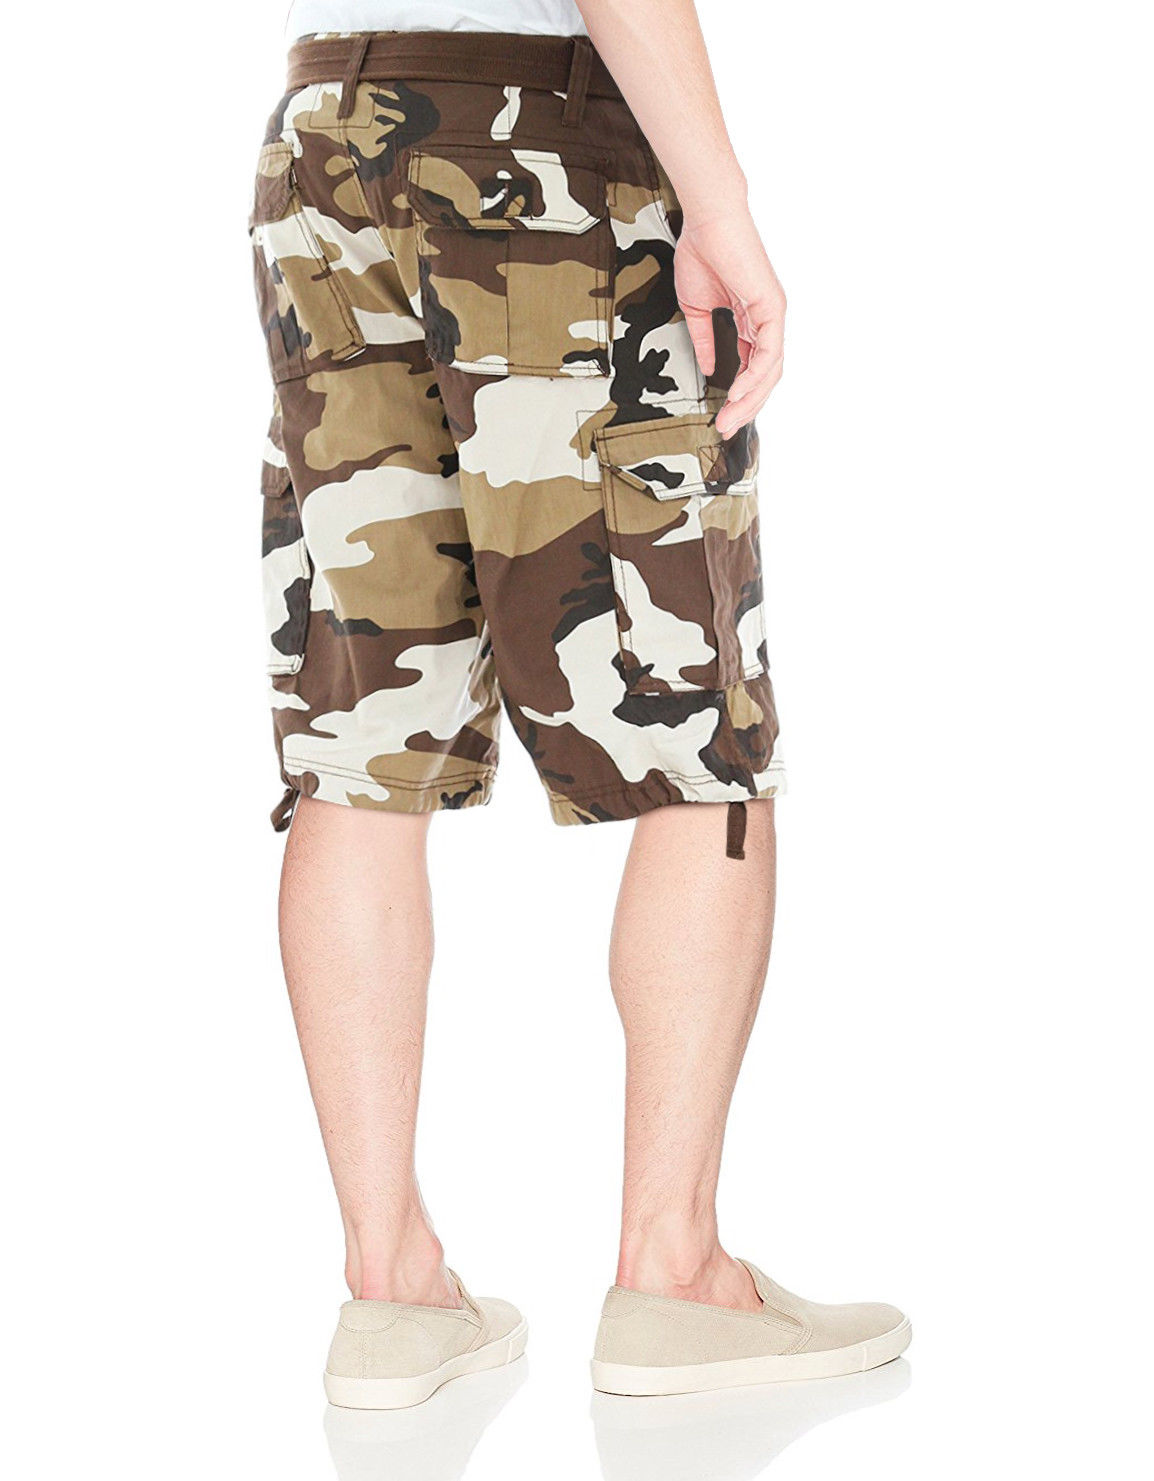 Men-039-s-Tactical-Combat-Military-Army-Cotton-Twill-Camo-Cargo-Shorts-With-Belt thumbnail 4